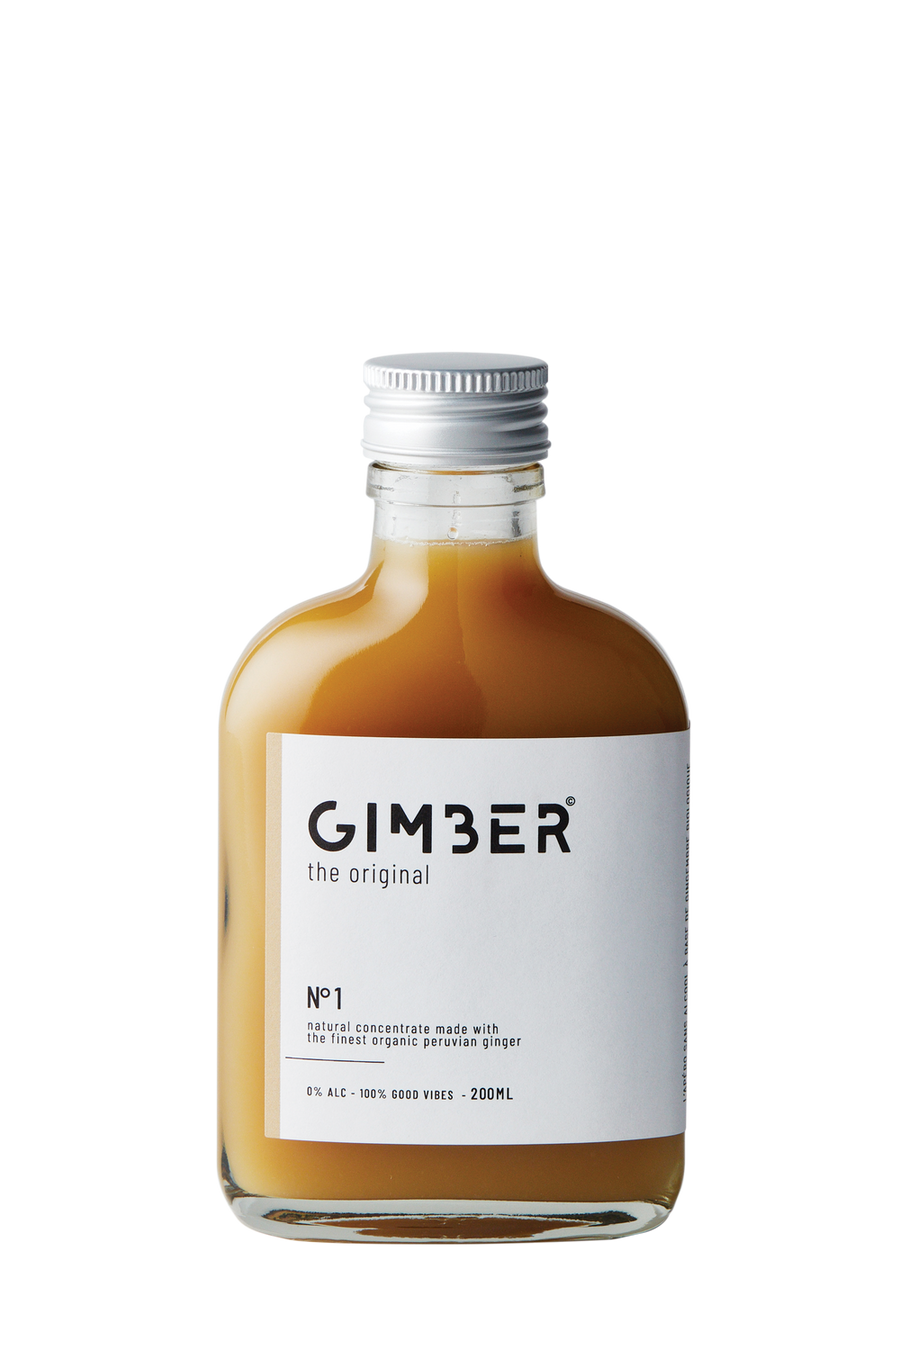 GIMBER Alcohol Free Organic Ginger Concentrate